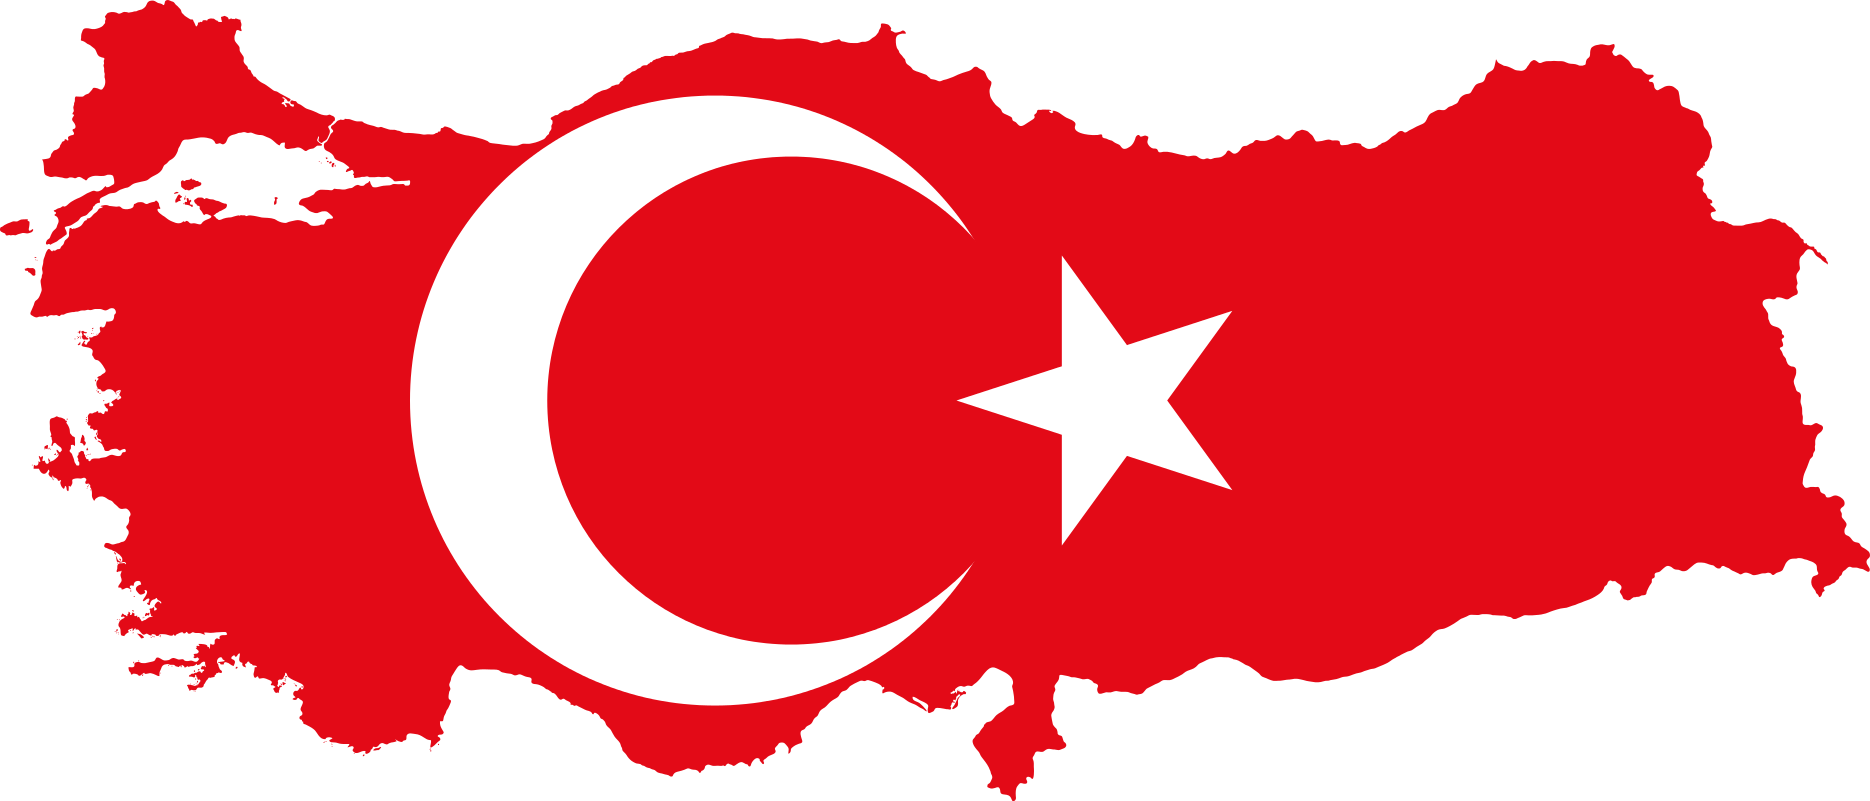 Turkey country png. File flag map of